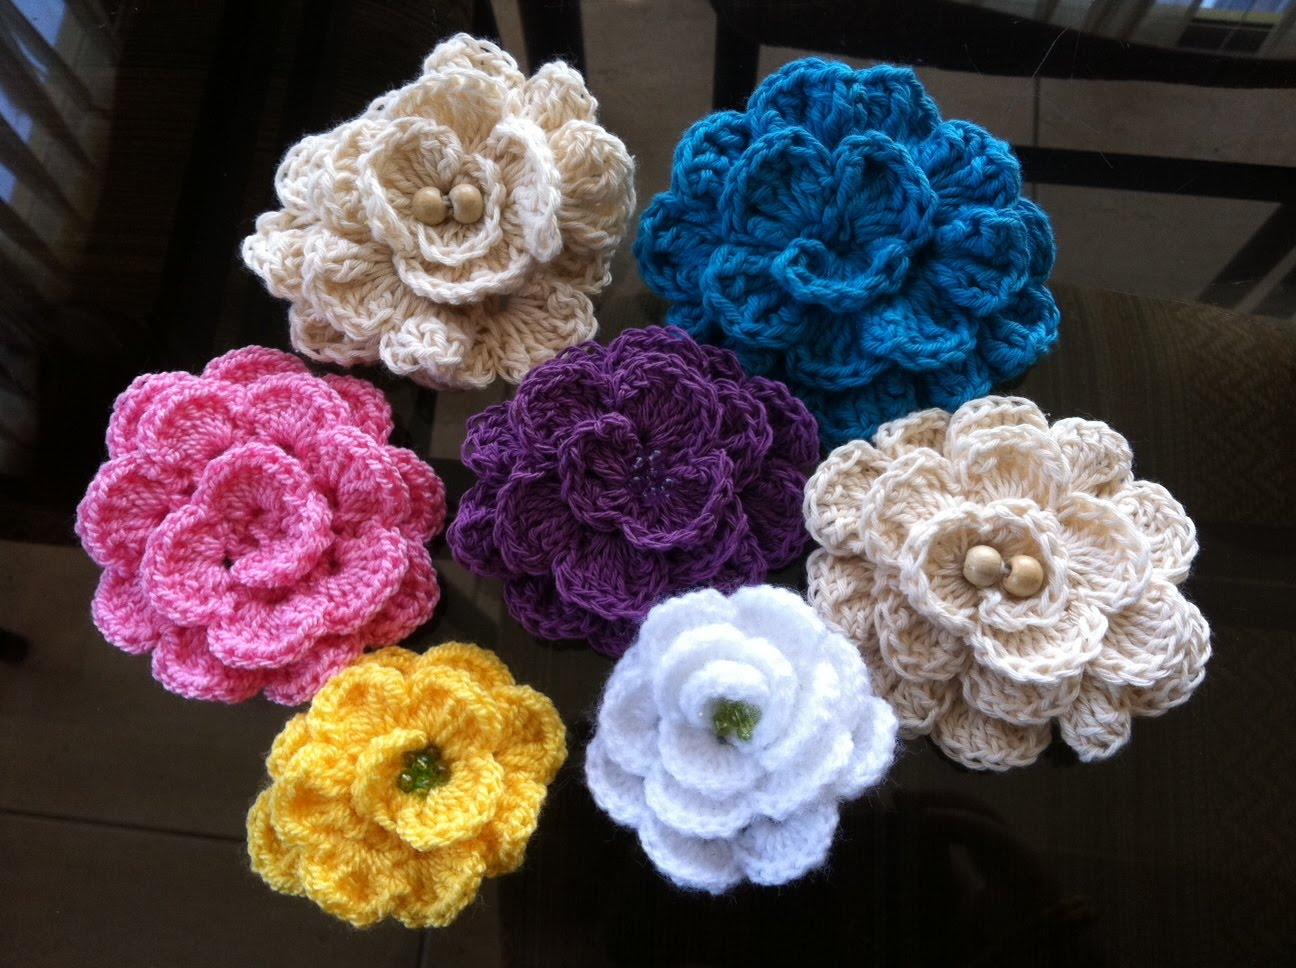 Download image Flores De Lana Tejidas En Crochet PC, Android, iPhone